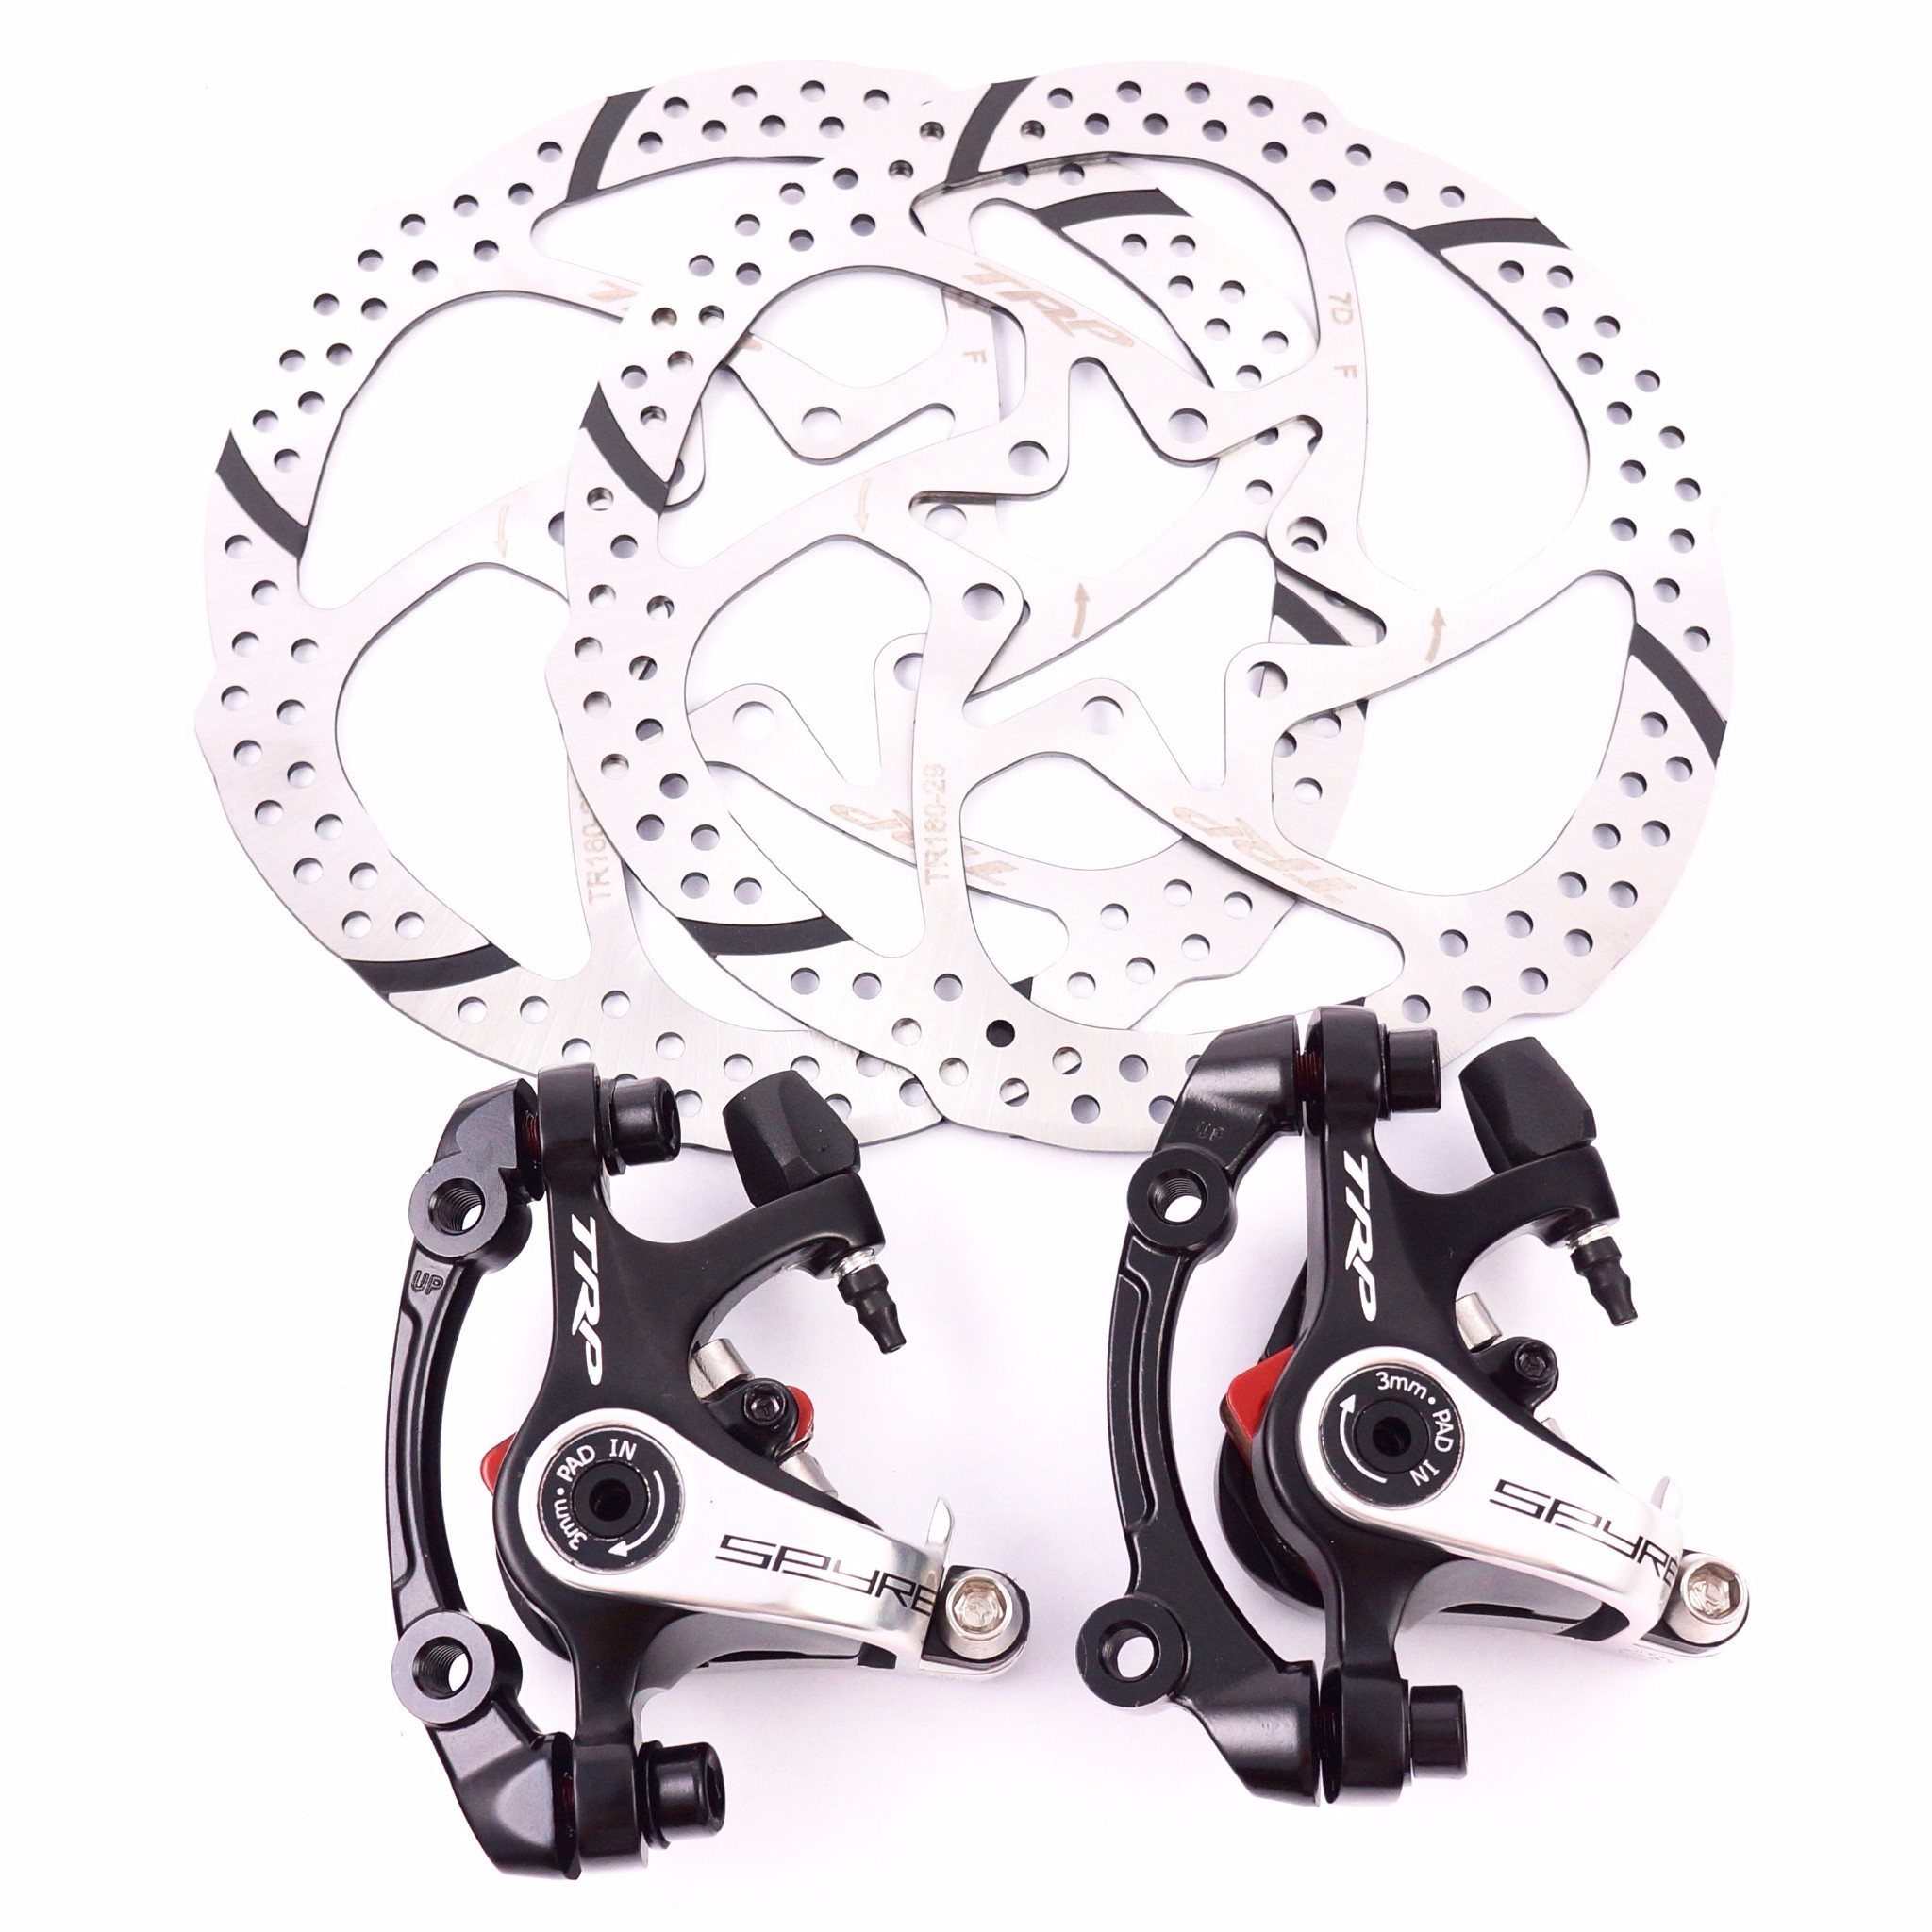 SINGLE TRP SPYKE *REAR 160mm* mechanical disc brake Dual Side Actuation MTB bike